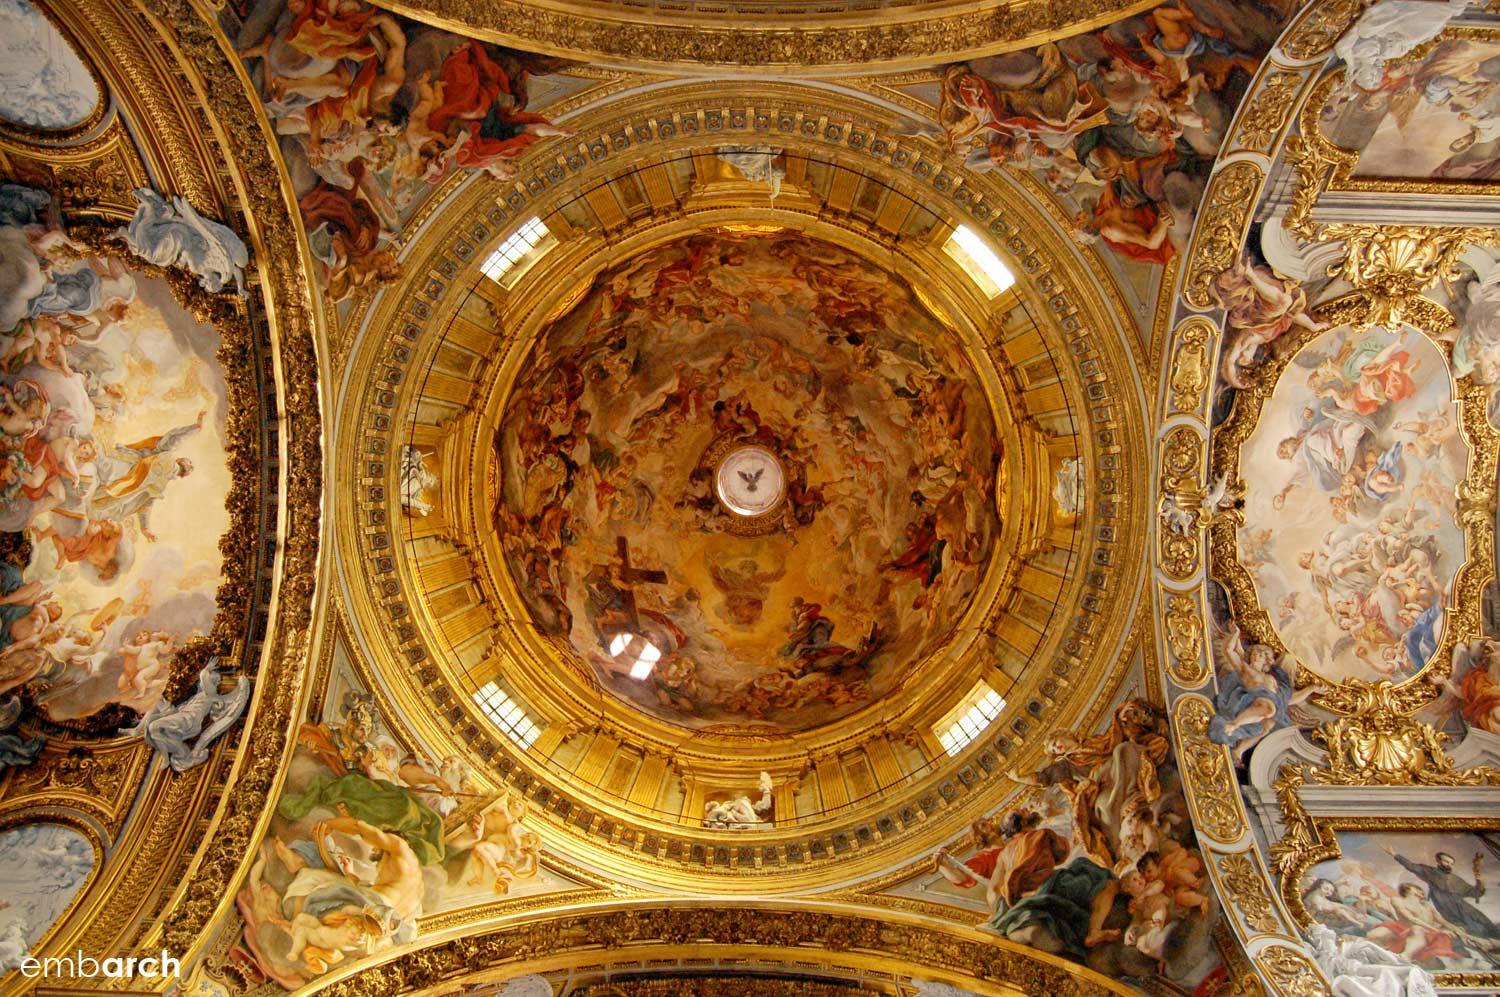 Church of the Gesù - interior